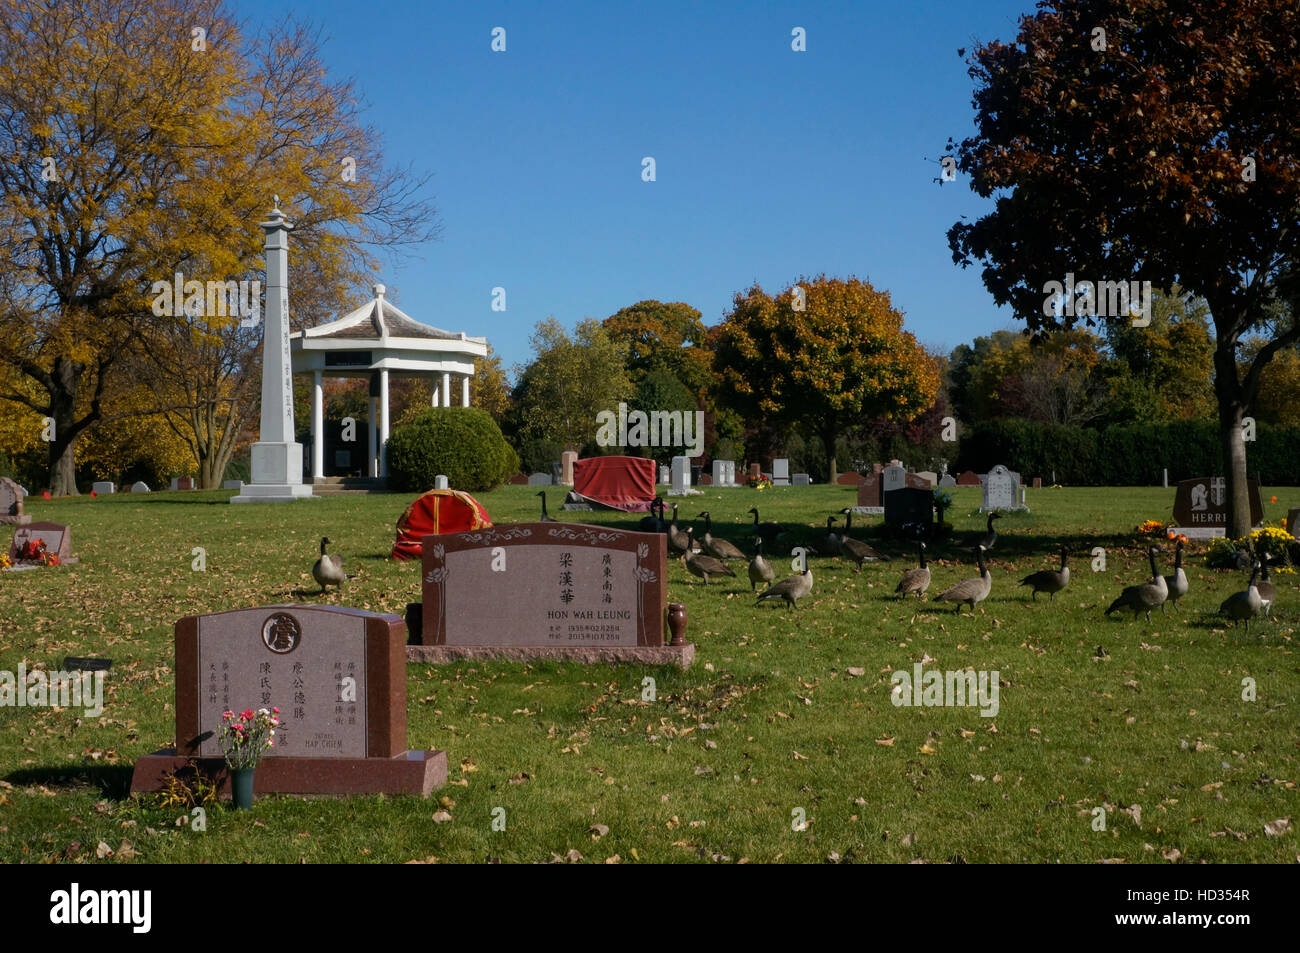 Rosehill Cemetery in Chicago, Illinois. - Stock Image